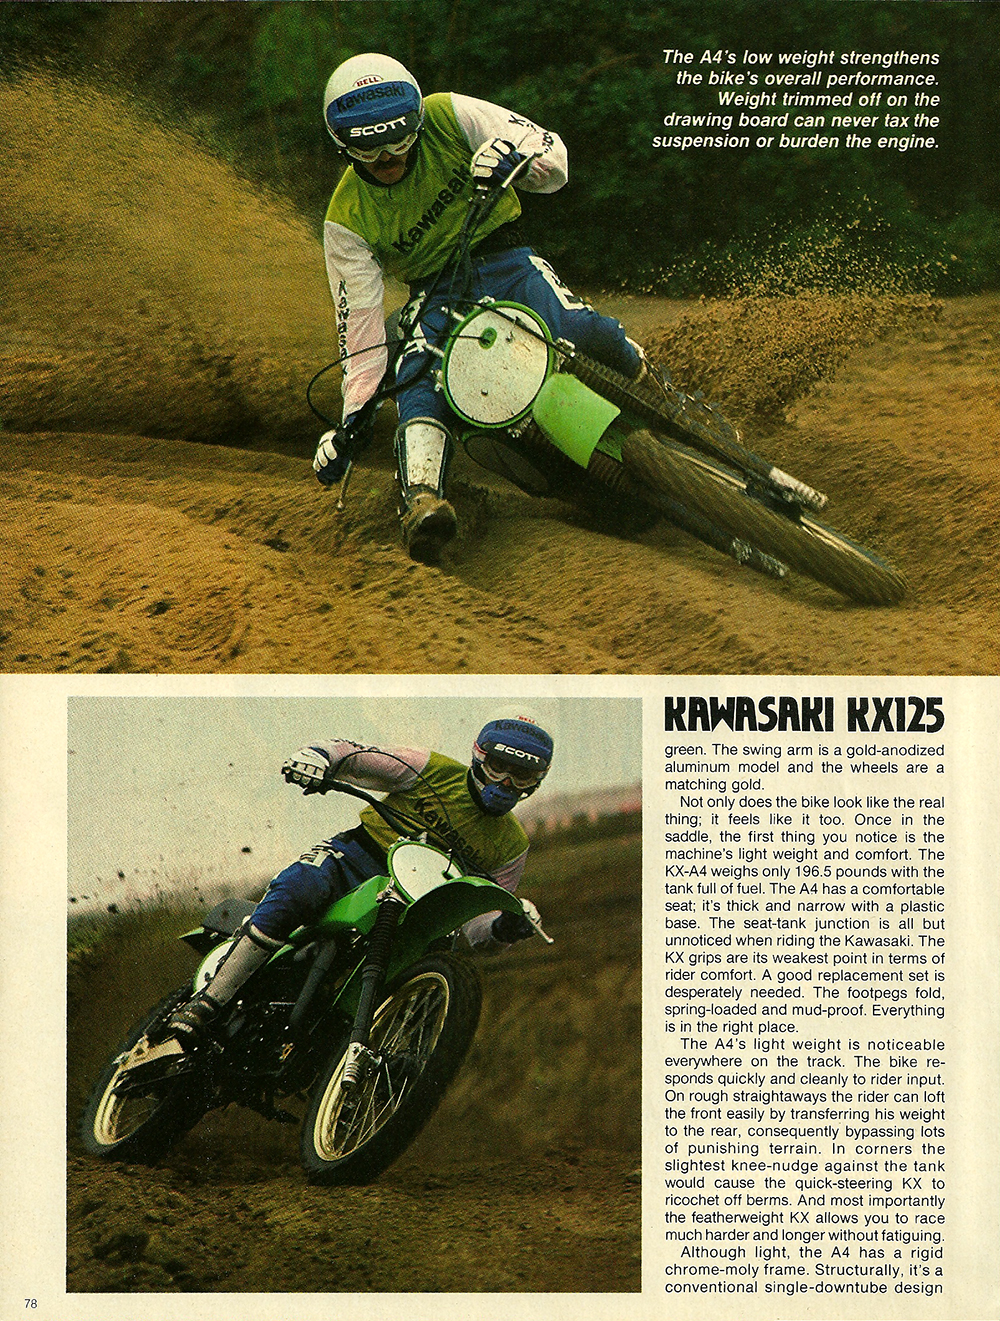 1978 Kawasaki KX125 A4 road test 03.jpg